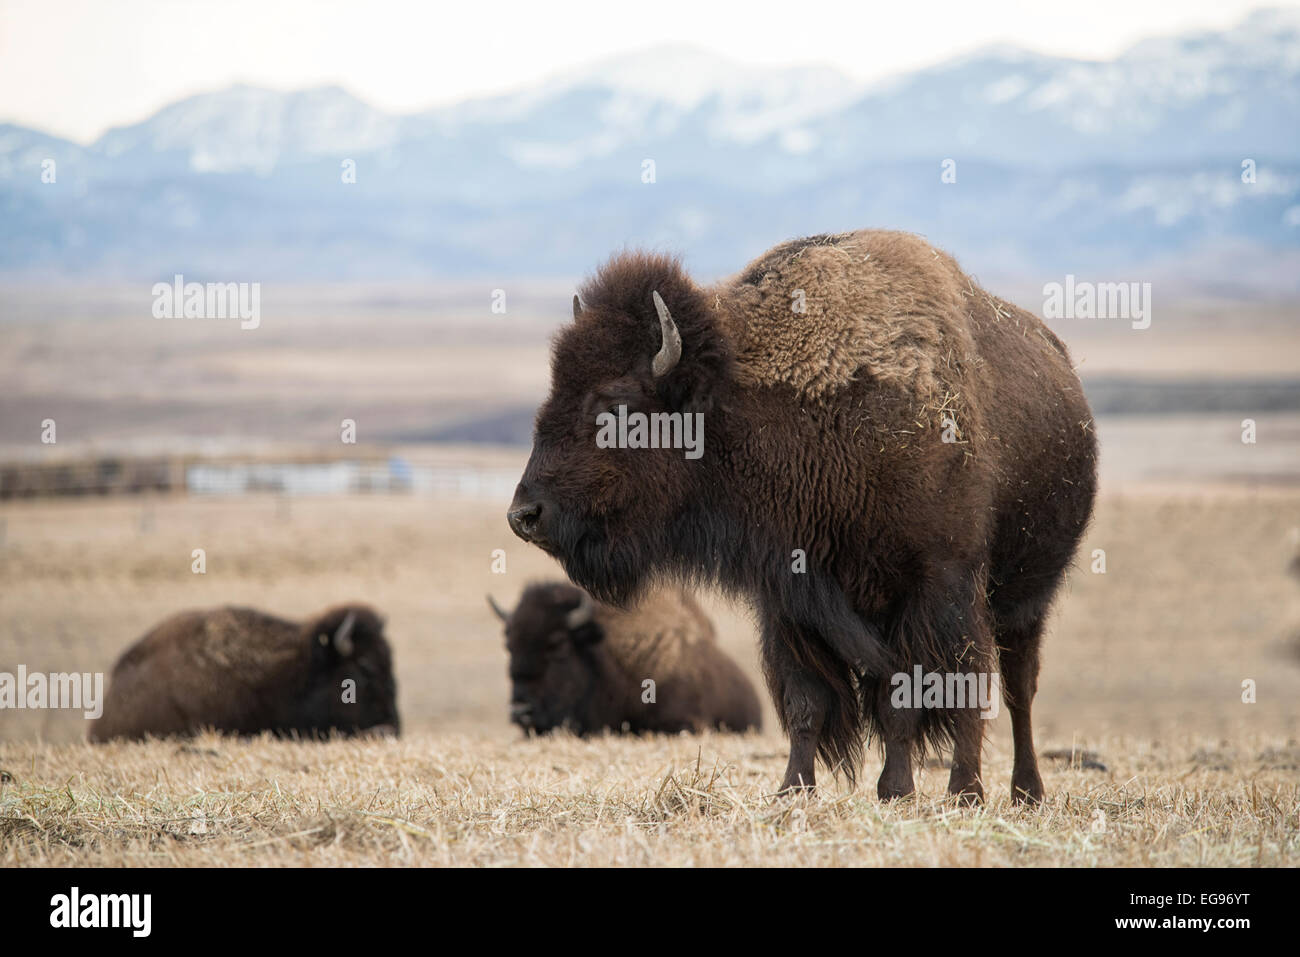 A Large female bison standing in a field with two other bison in background. - Stock Image